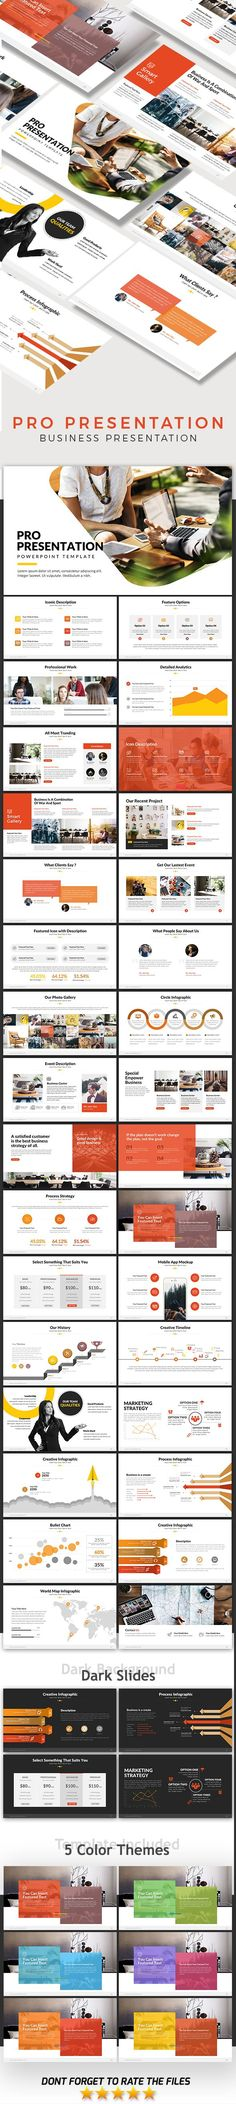 381 Best PowerPoint Presentation Collections images in 2019